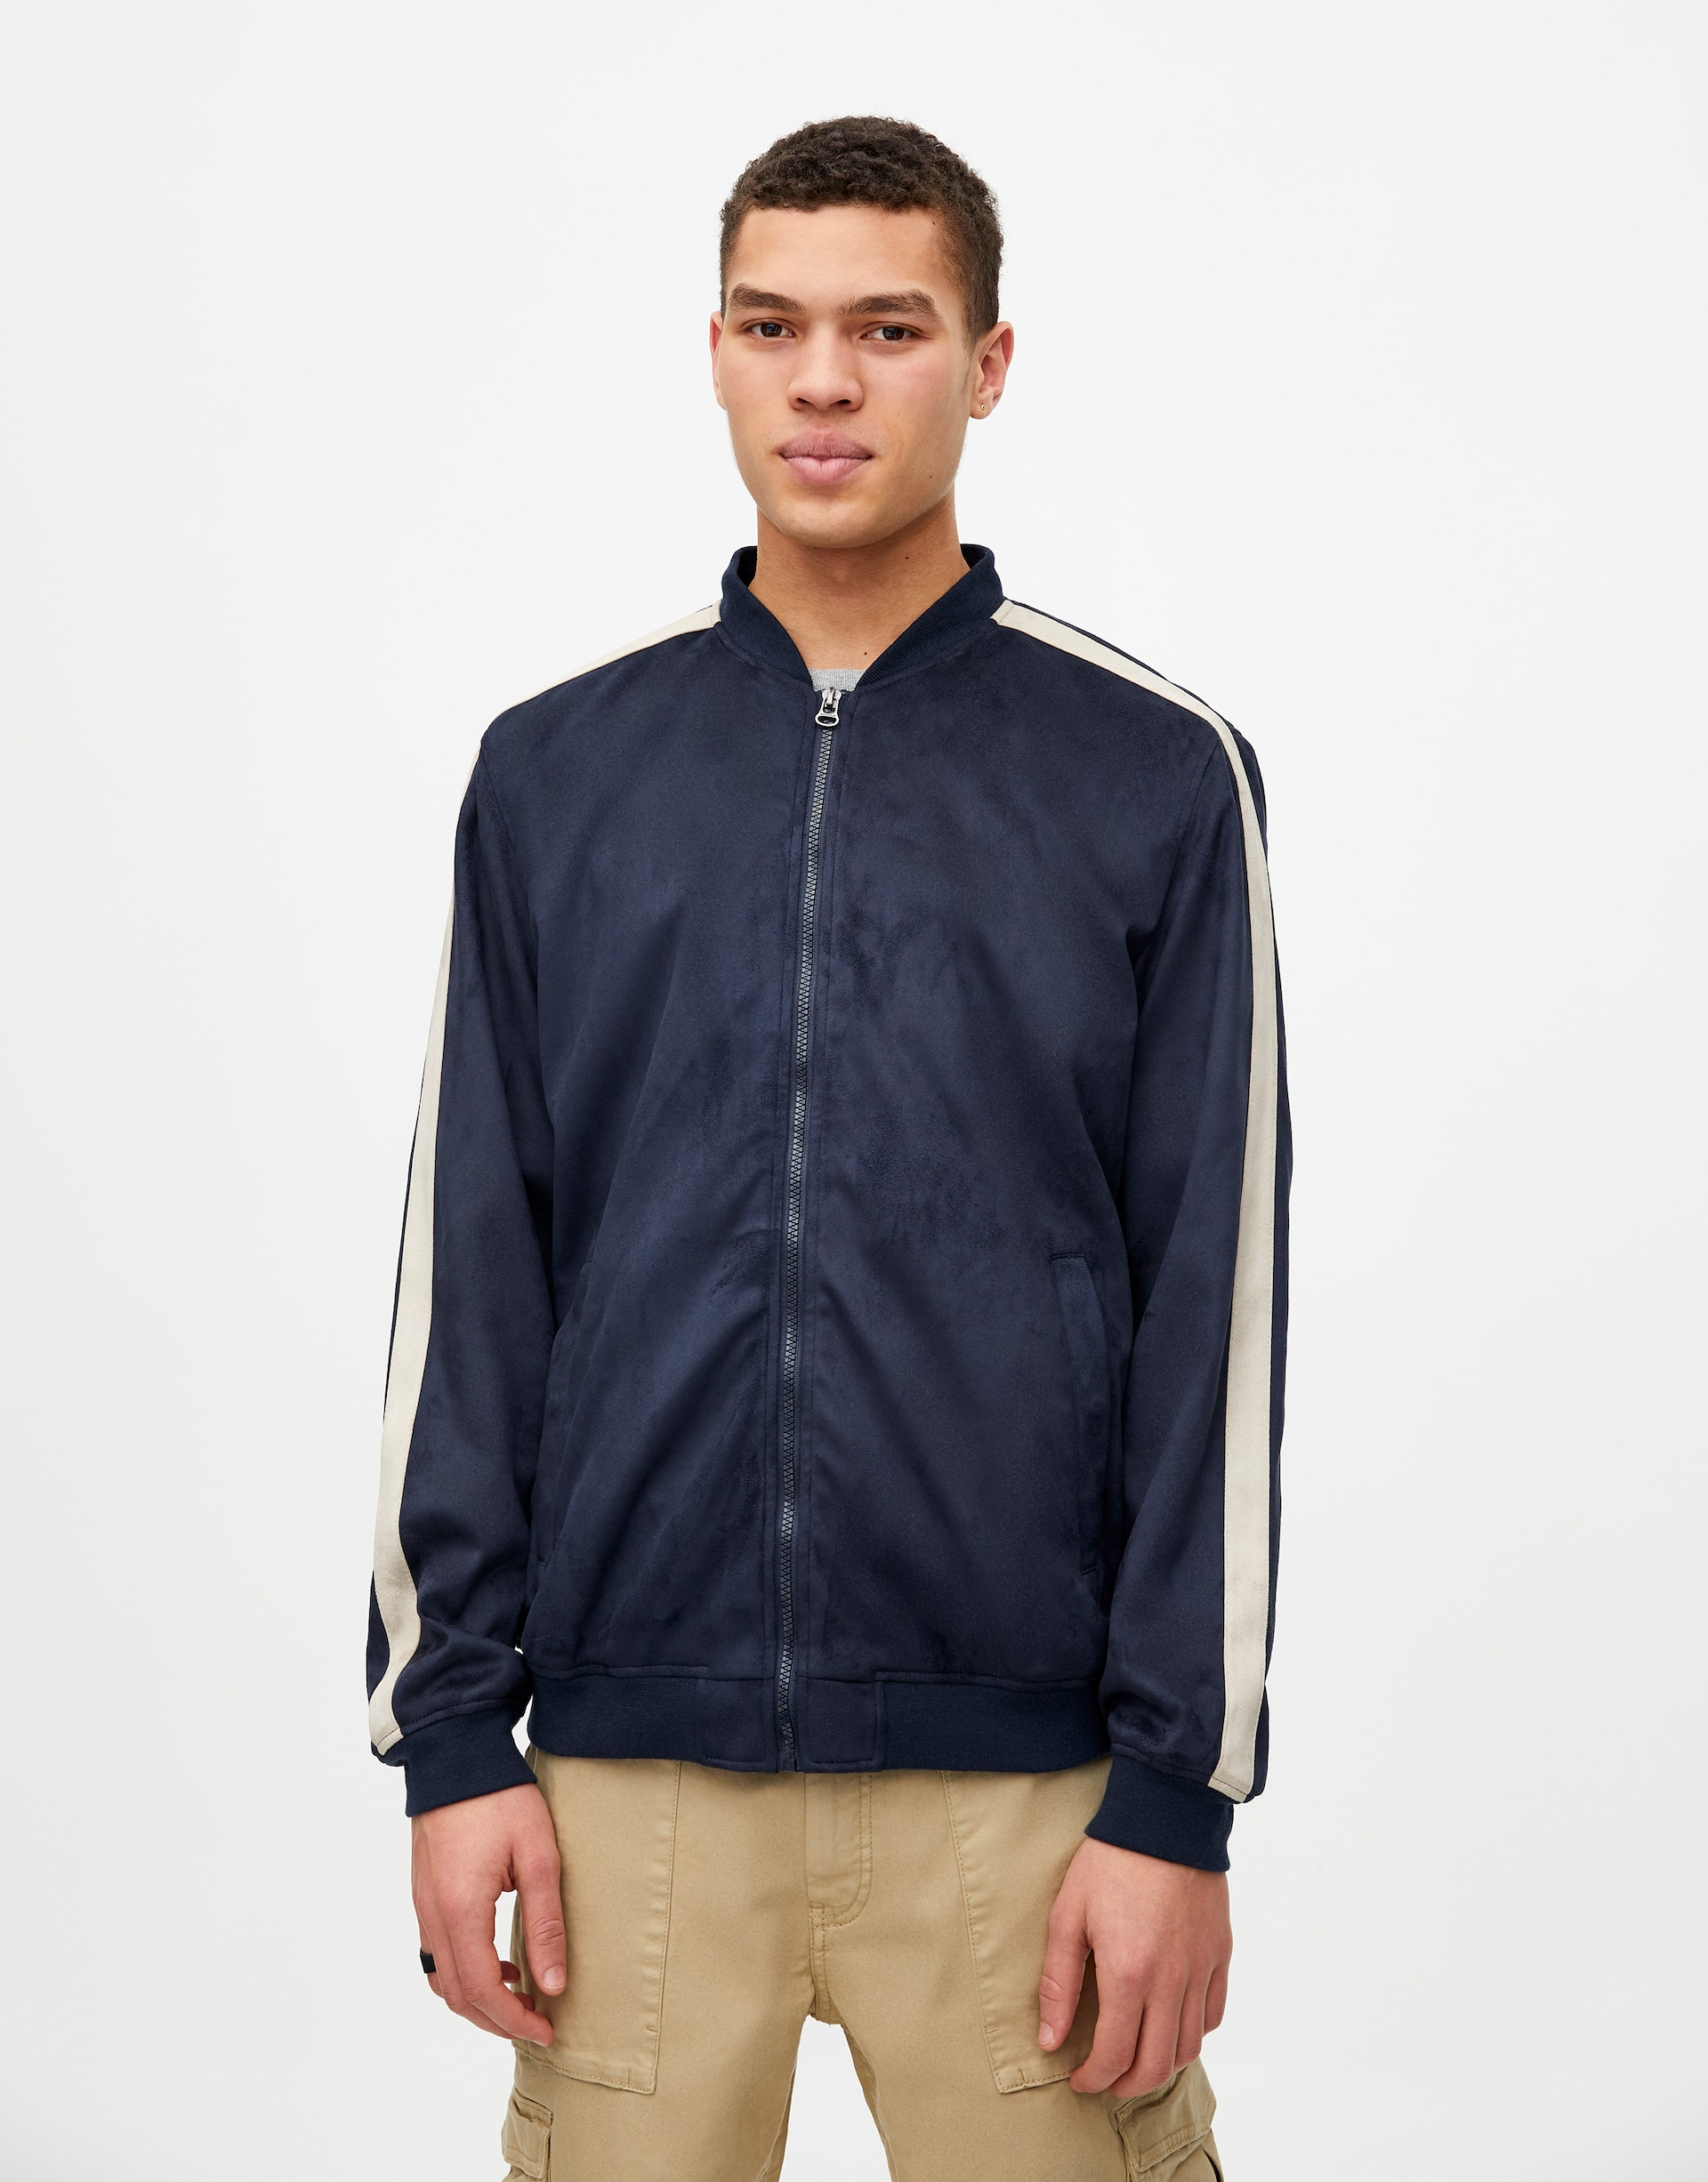 f587b1df4 Faux suede bomber jacket - pull&bear